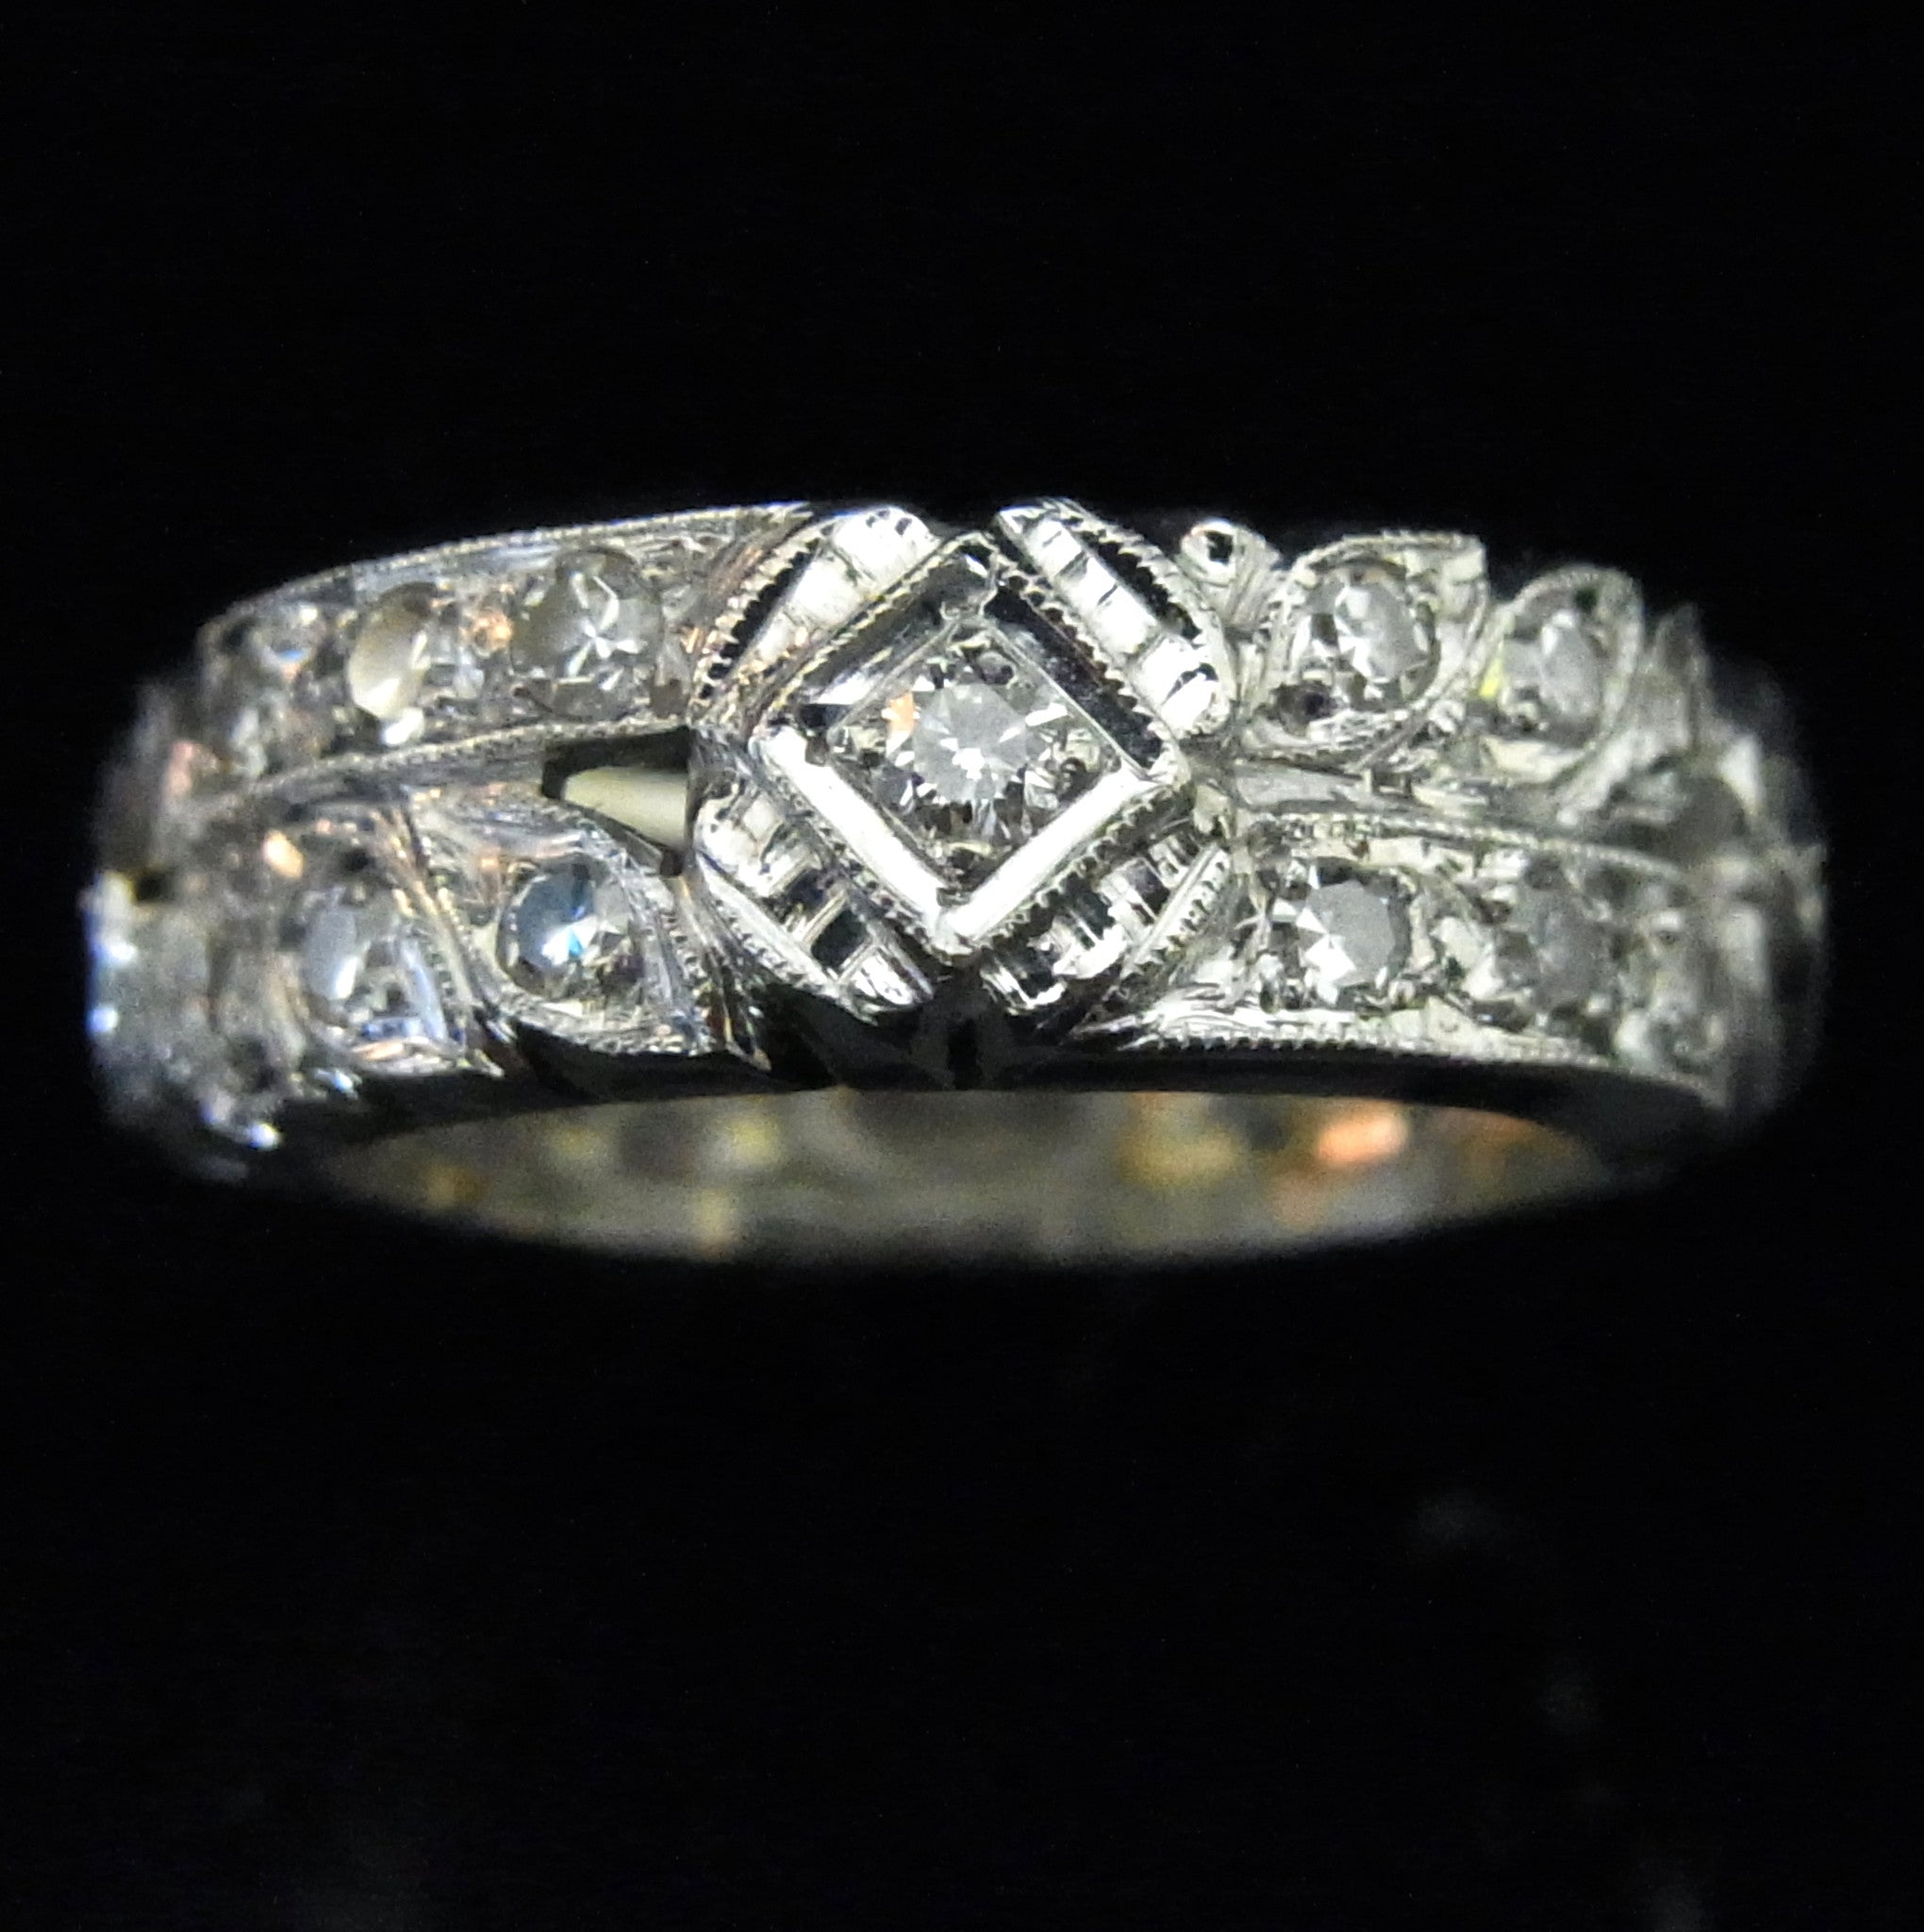 engagement wedding band white ring amazon jewelry gold bands trellis eternity diamond dp com